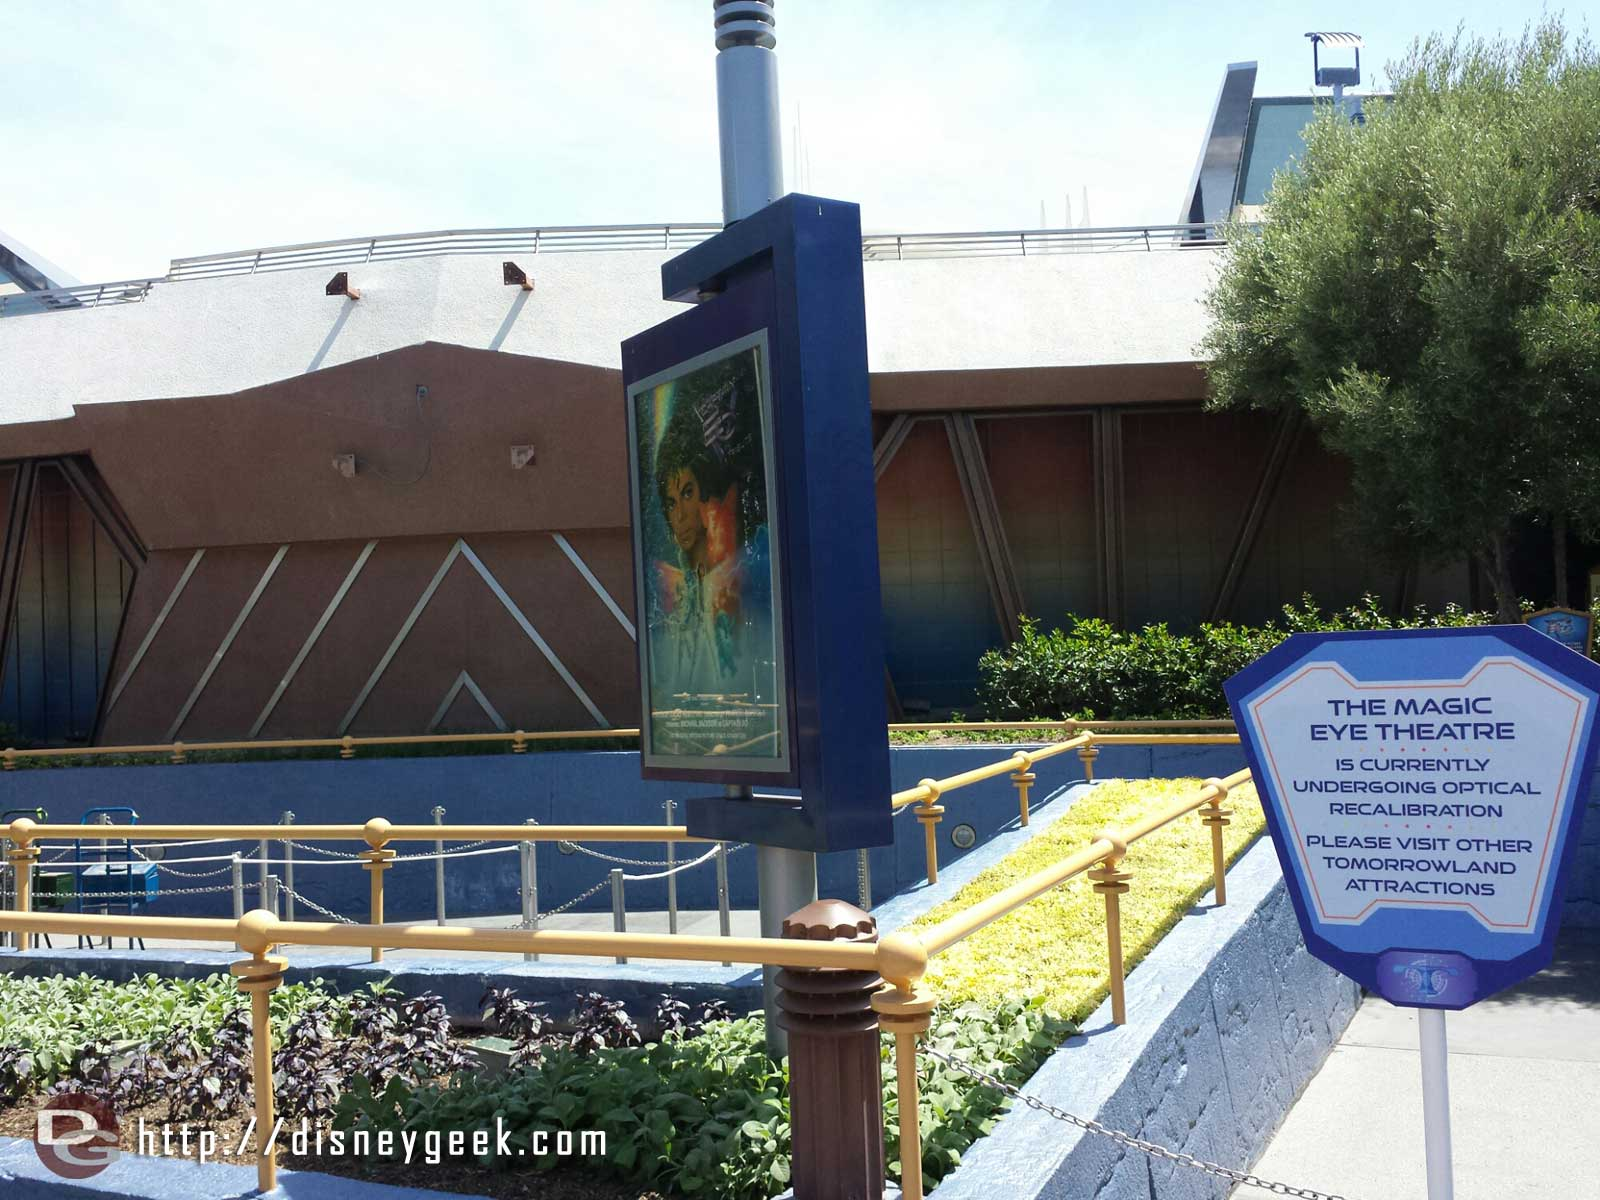 Captain EO is closed and prepartions for the Guardians of the Galaxy preview, the sign on the theater has been removed.